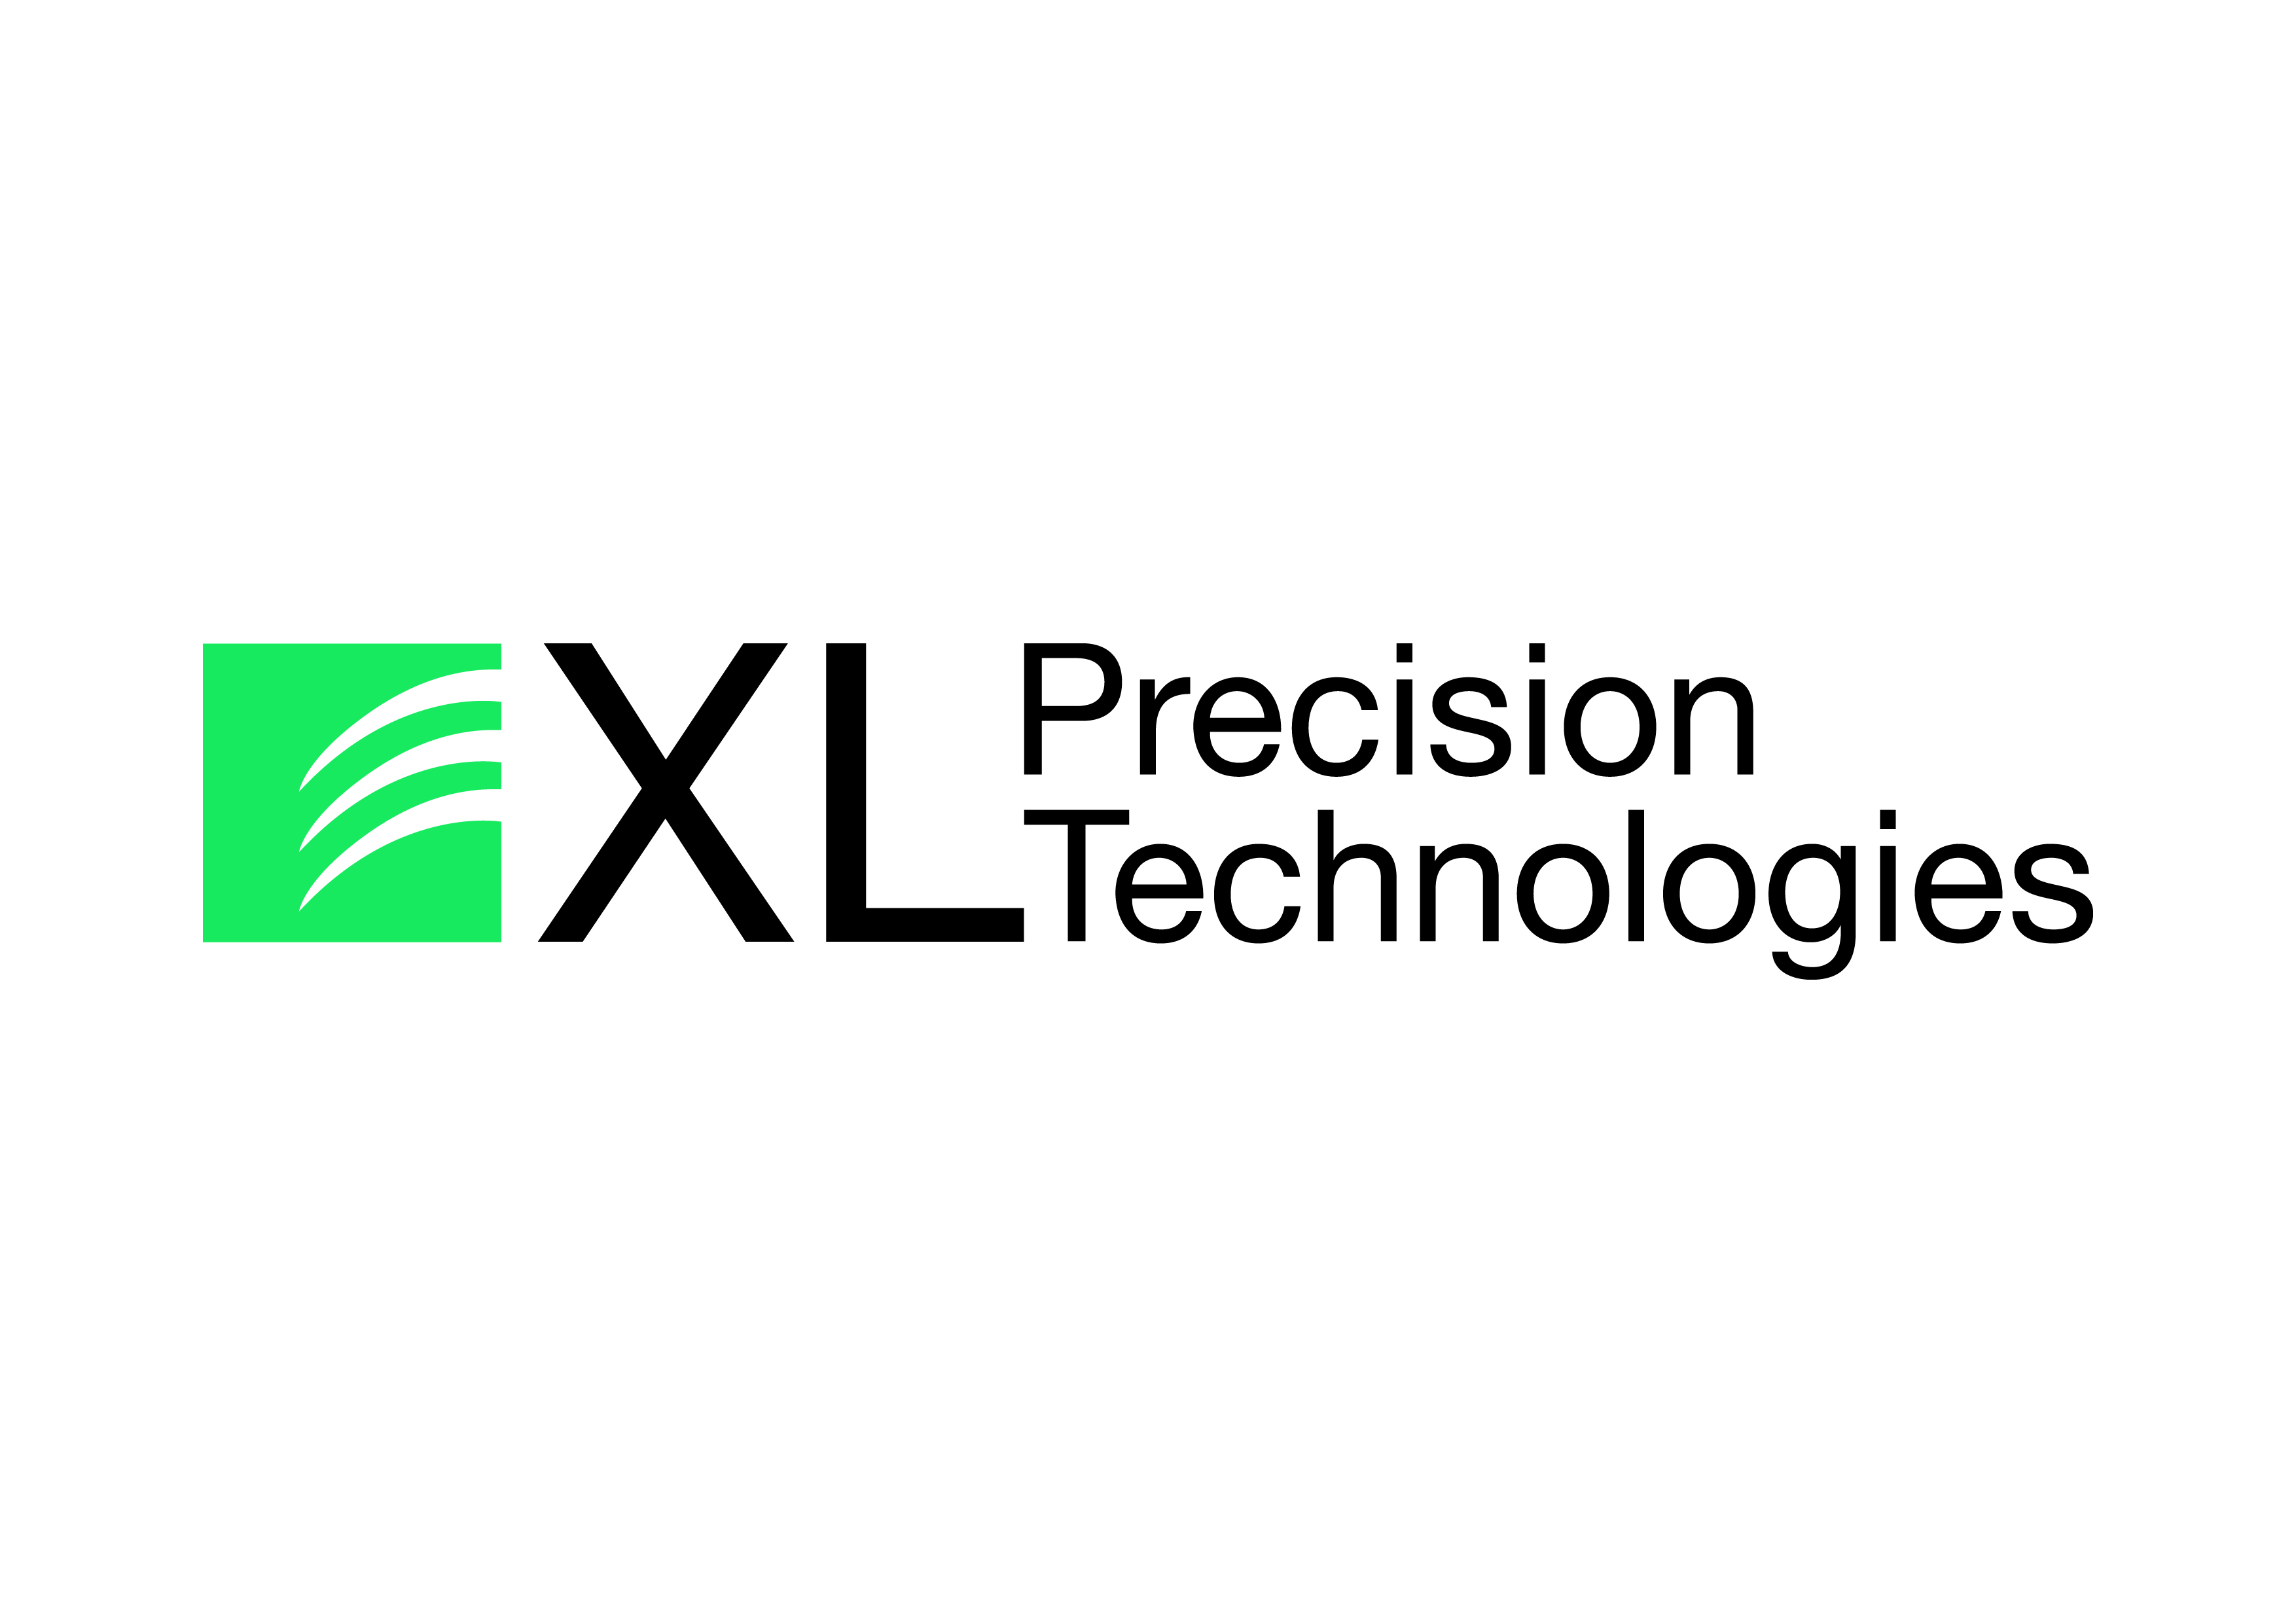 XL Precision Technologies Ltd